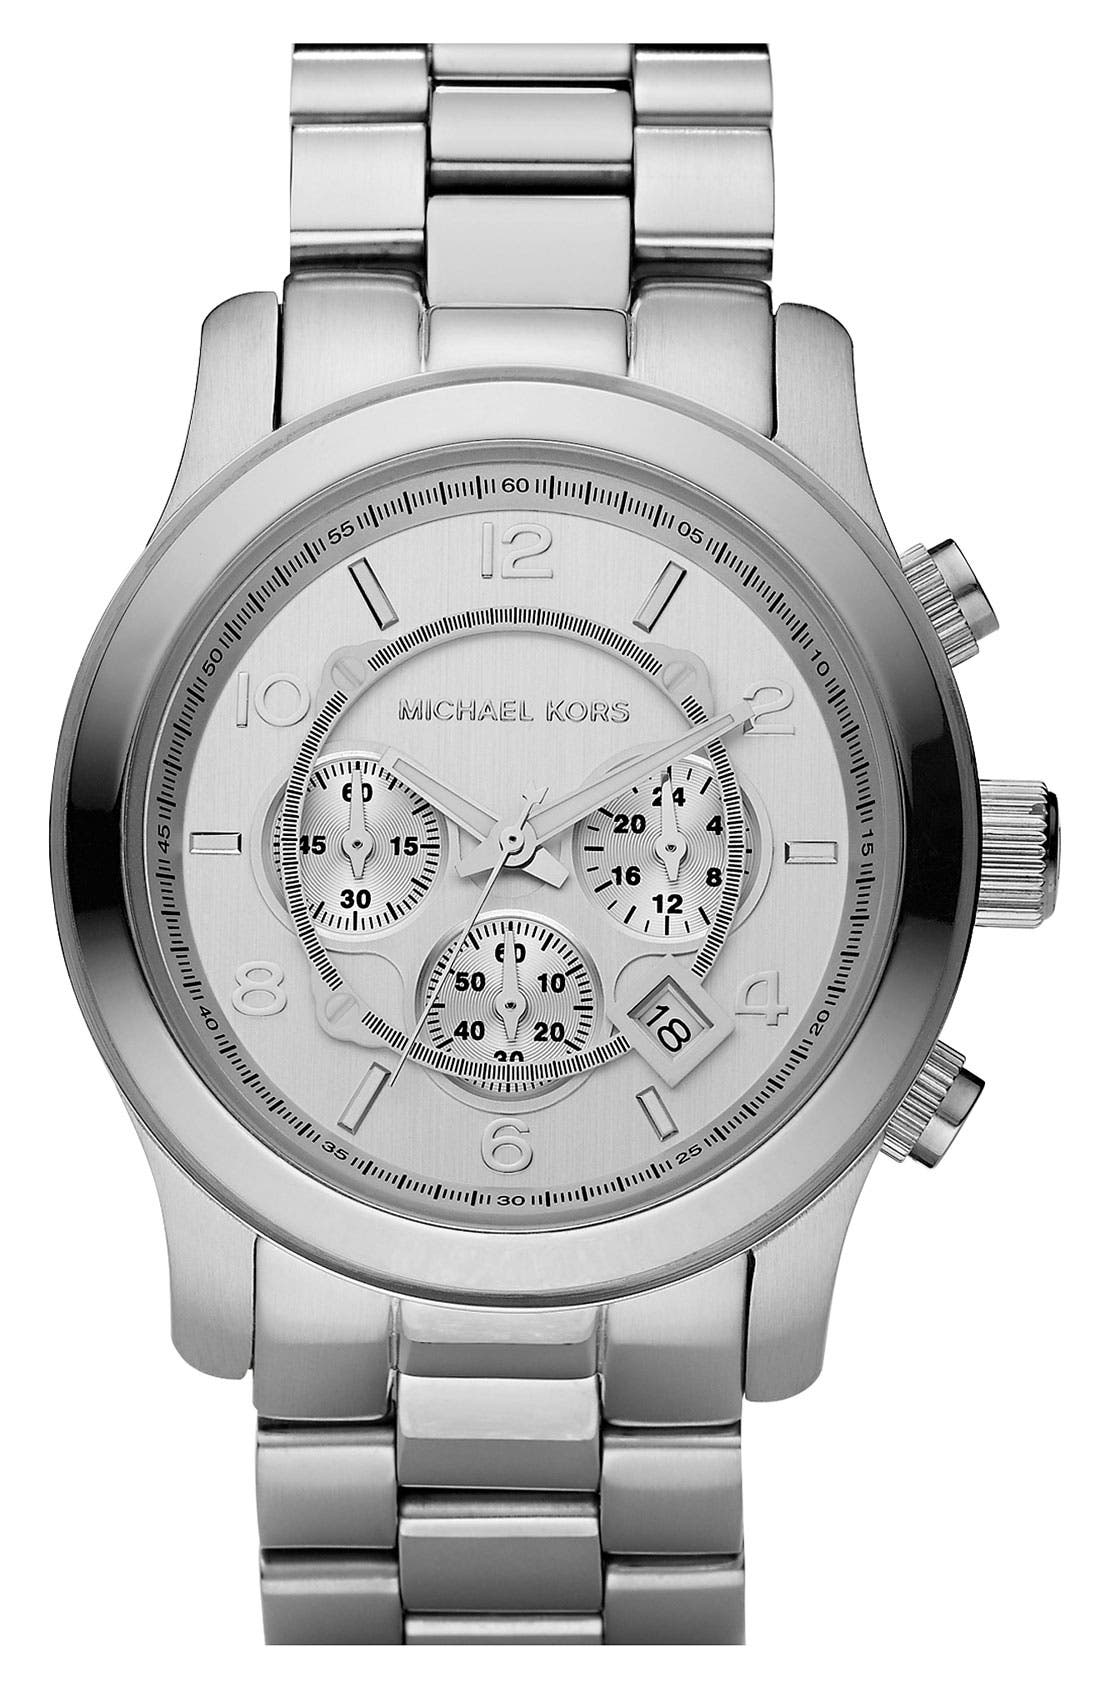 Main Image - Michael Kors 'Silvertone Oversize Iconic' Chronograph Watch, 45mm